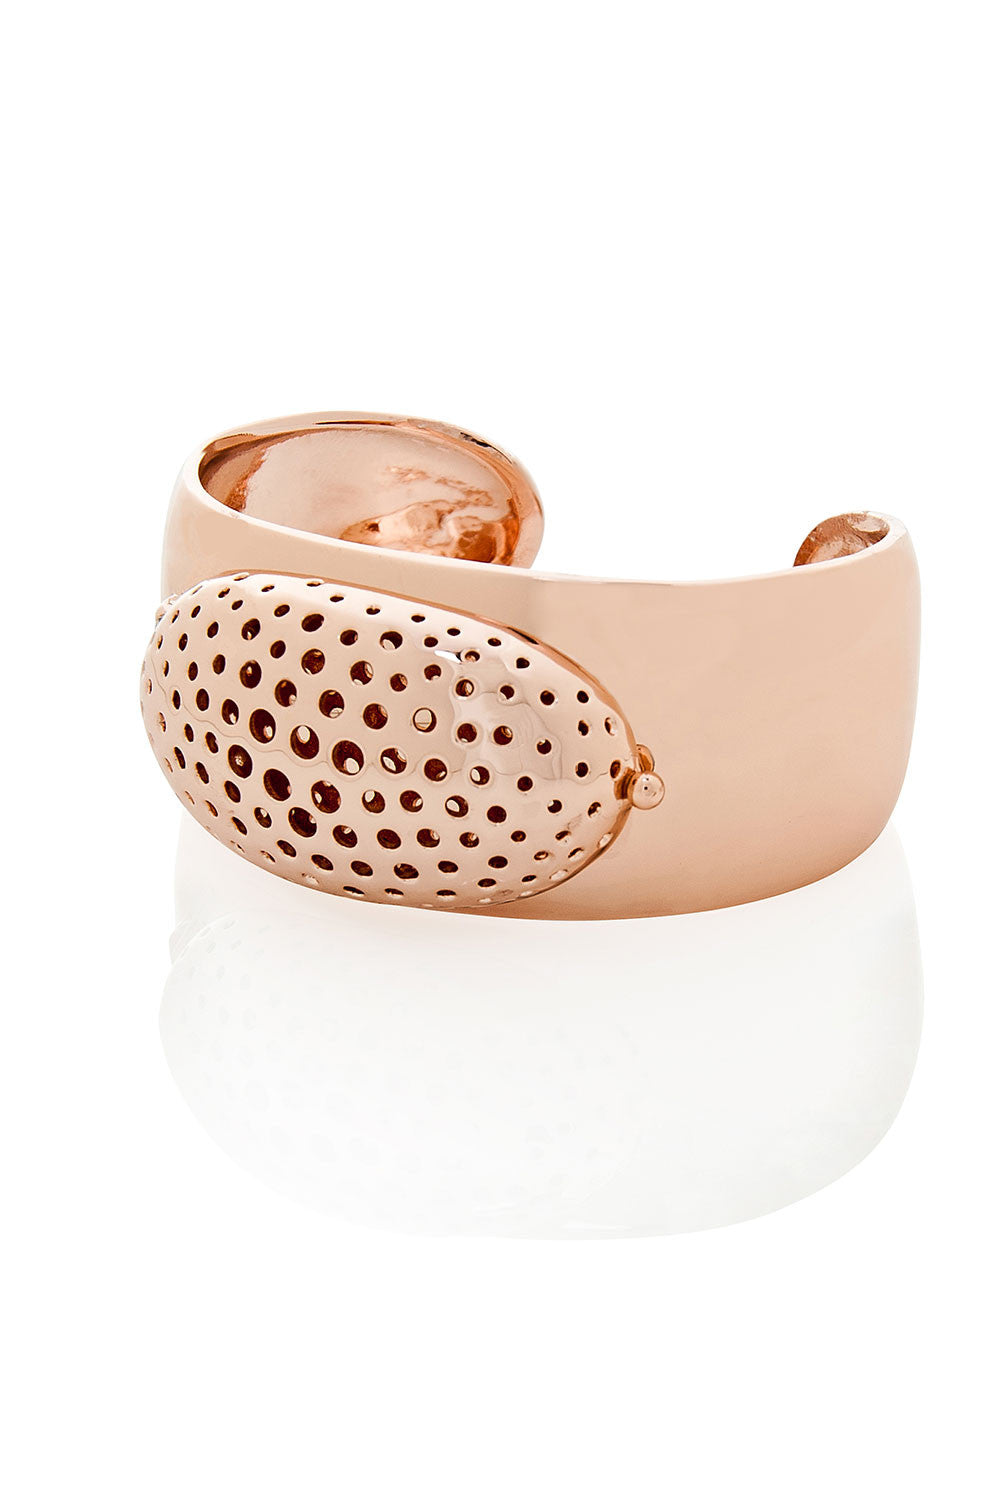 Tom Binns Rose Gold Cuff